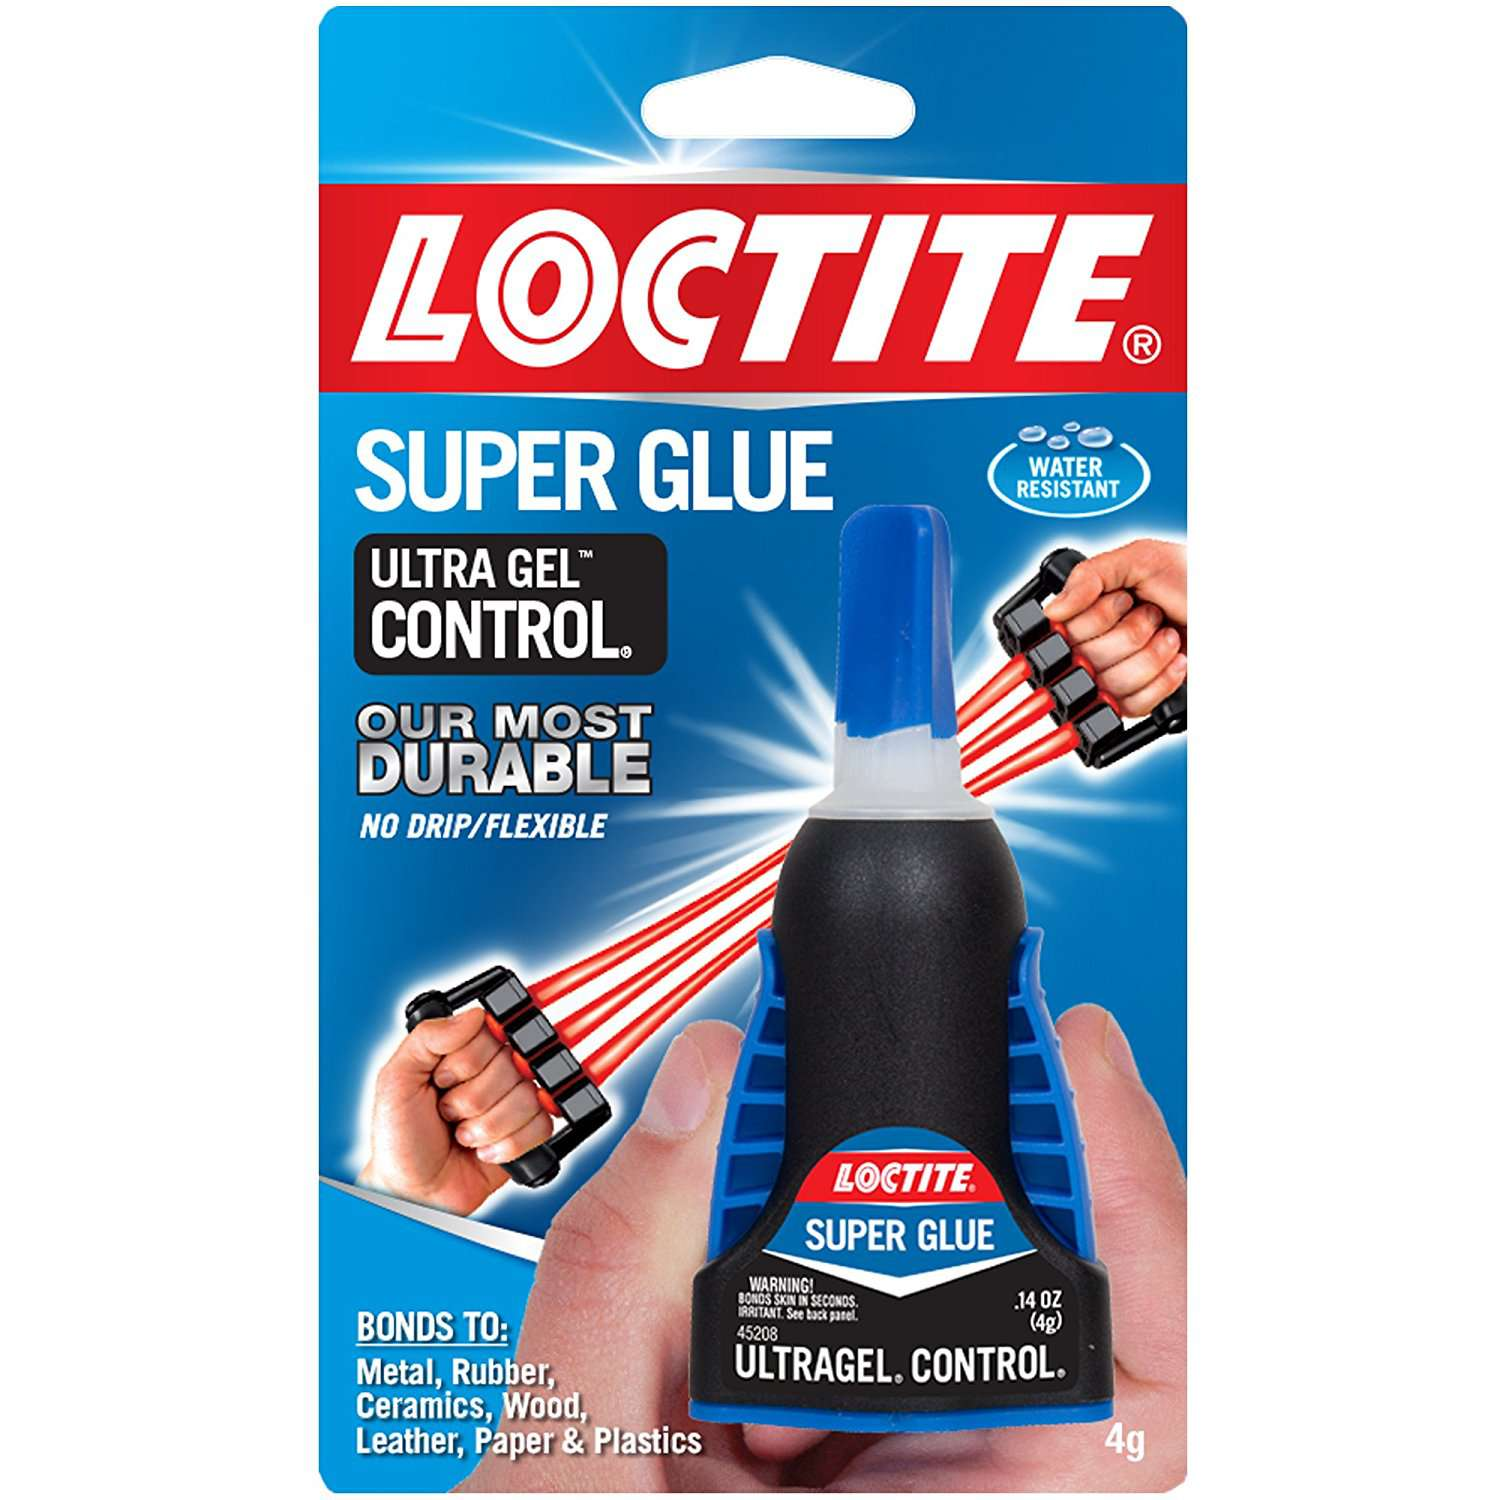 The 7 Best Super Glues for 2019